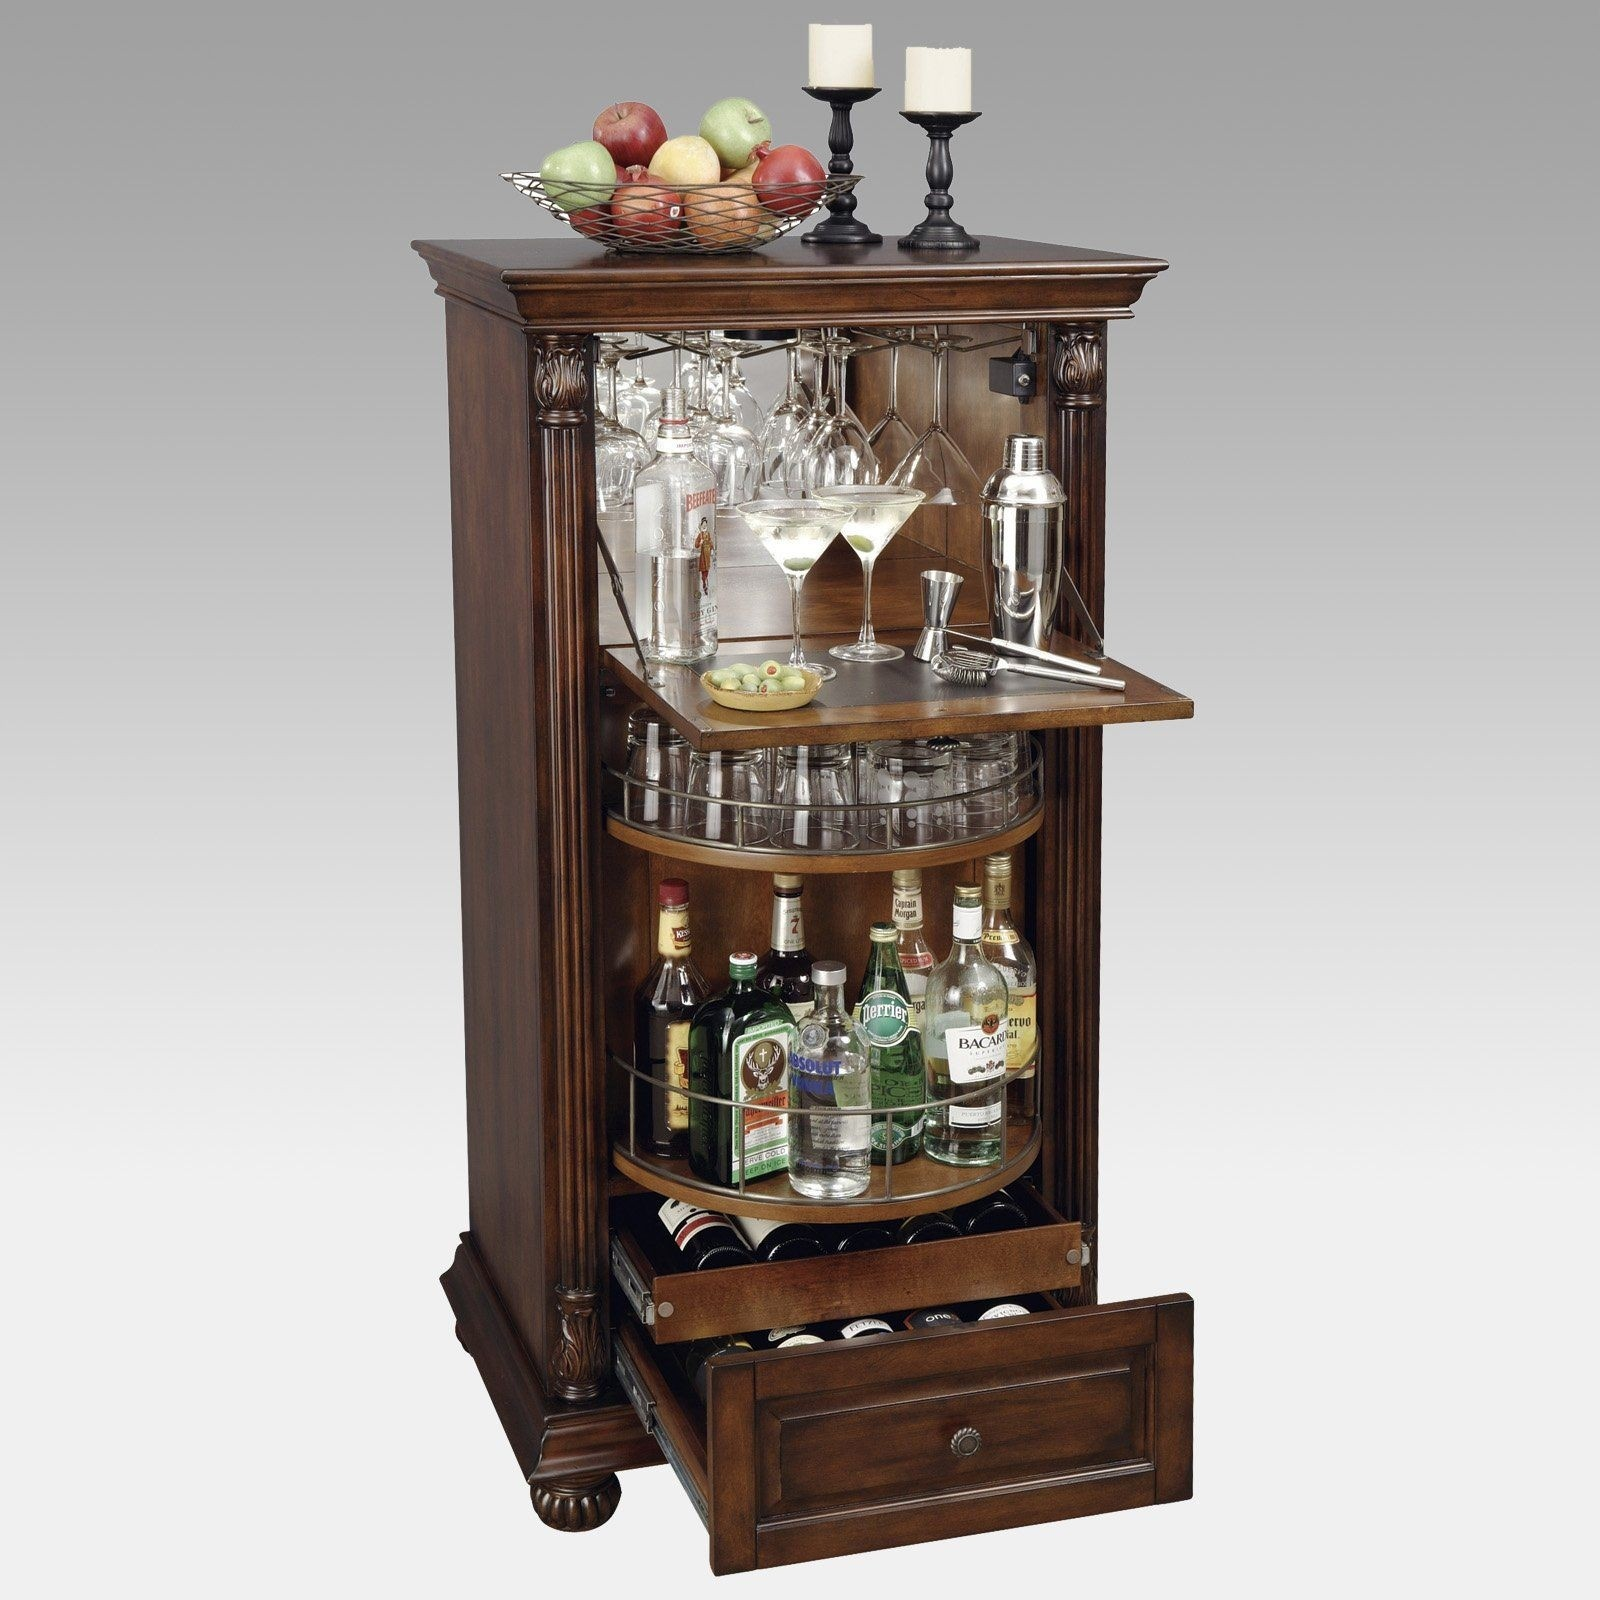 Enjoyable Small Bar Cabinets For Home Ideas On Foter Download Free Architecture Designs Photstoregrimeyleaguecom